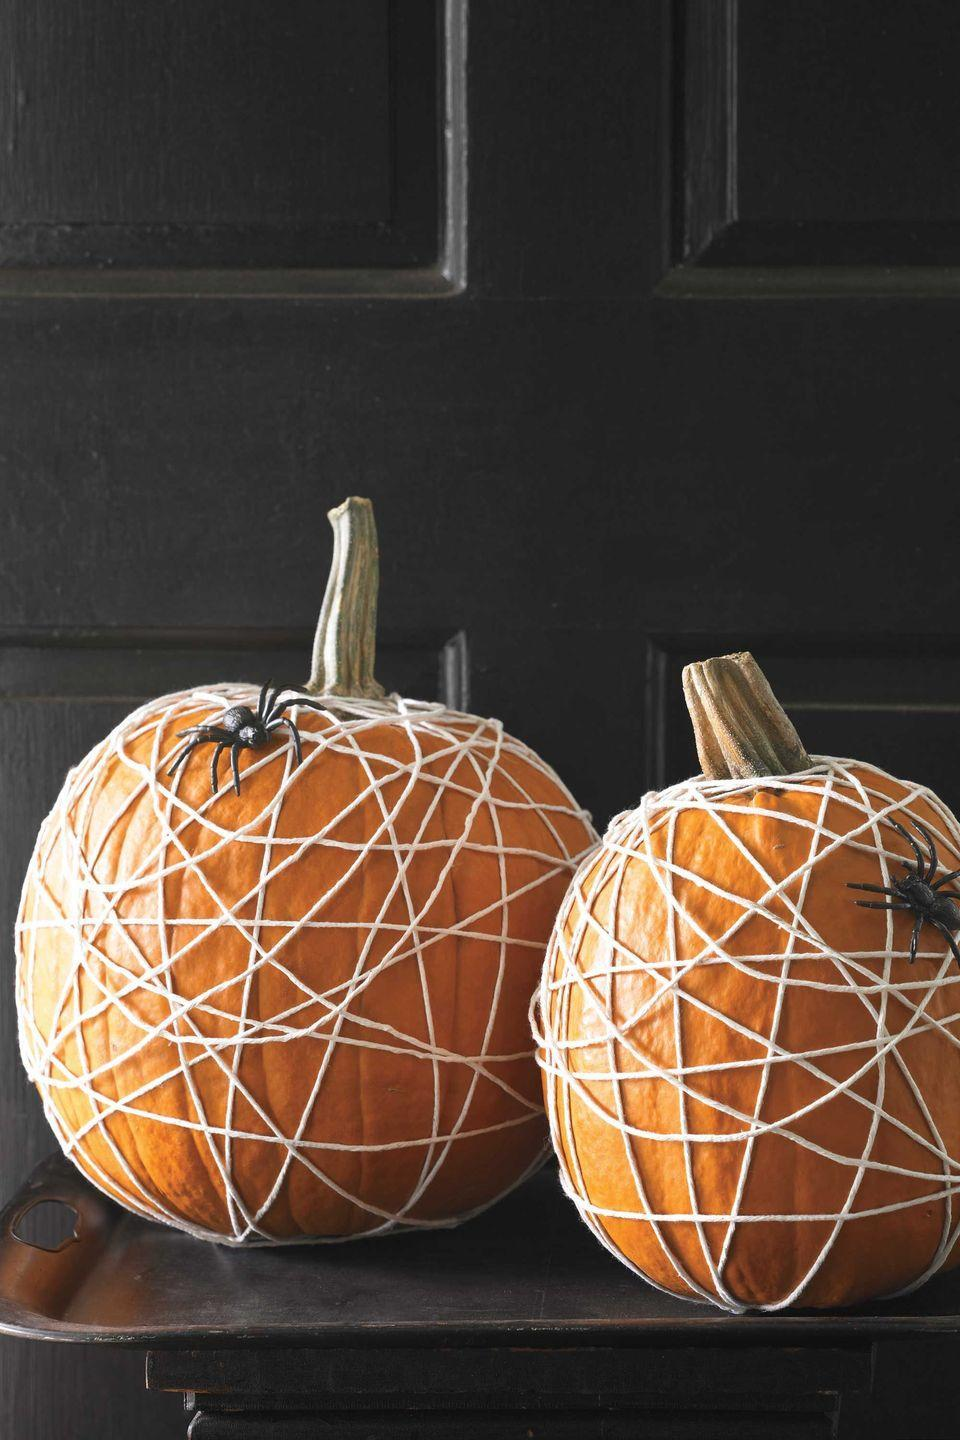 """<p>Cotton kitchen twine and few plastic spiders transform pumpkins from bright and cheery to creepy-crawly in a matter of minutes.</p><p><strong><em><a href=""""https://www.womansday.com/home/crafts-projects/how-to/a5880/halloween-craft-how-to-spider-web-pumpkin-123345/"""" rel=""""nofollow noopener"""" target=""""_blank"""" data-ylk=""""slk:Get the Tangled Web tutorial."""" class=""""link rapid-noclick-resp"""">Get the Tangled Web tutorial.</a></em></strong></p>"""